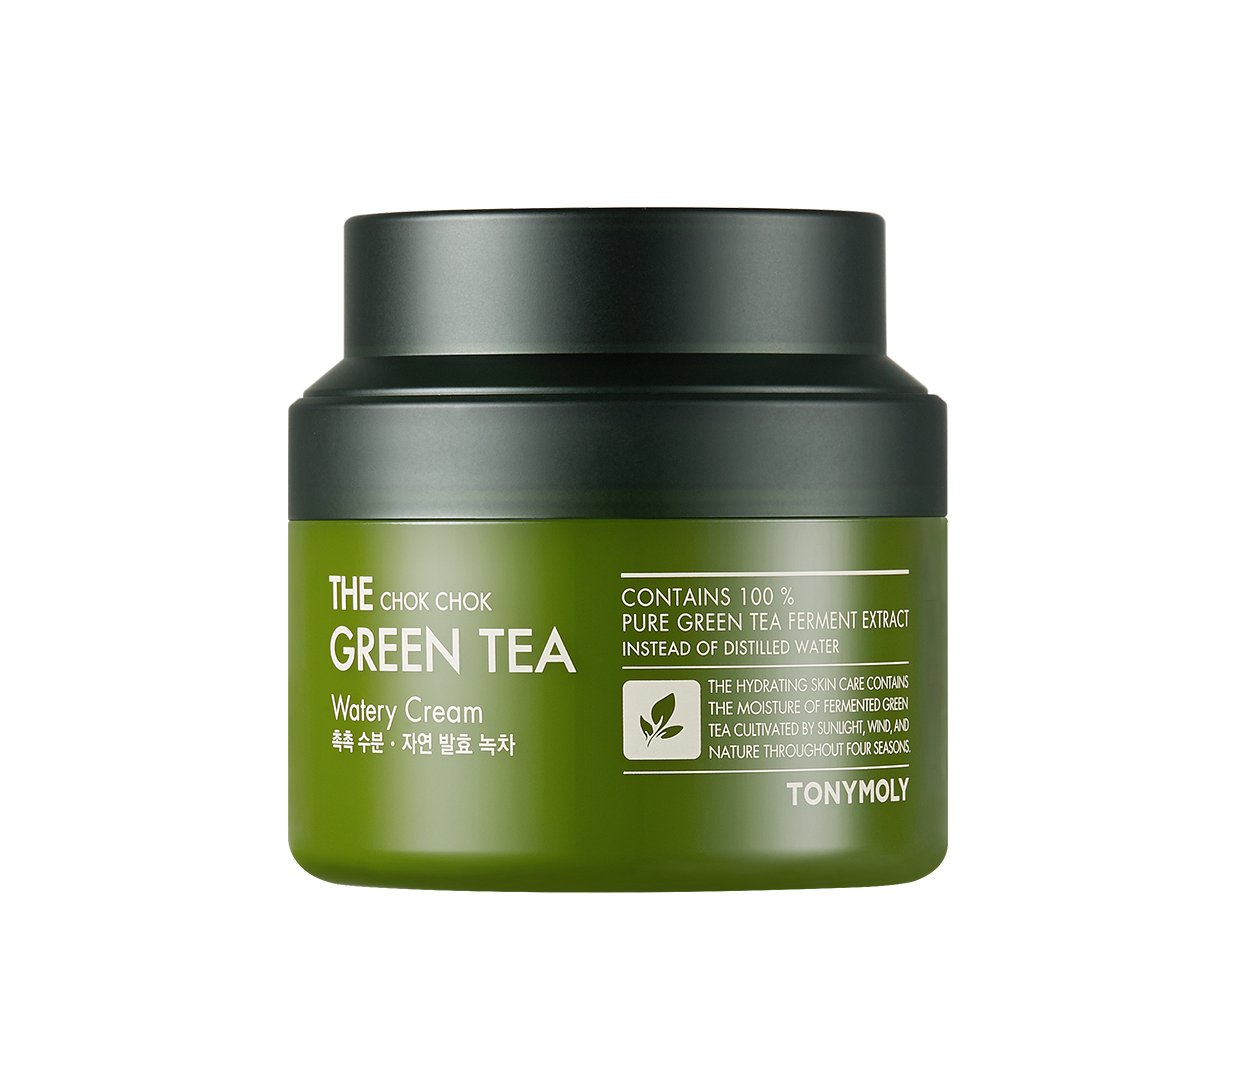 TONYMOLY The Chok Chok Green Tea Watery Cream, 3.4 fl. oz.